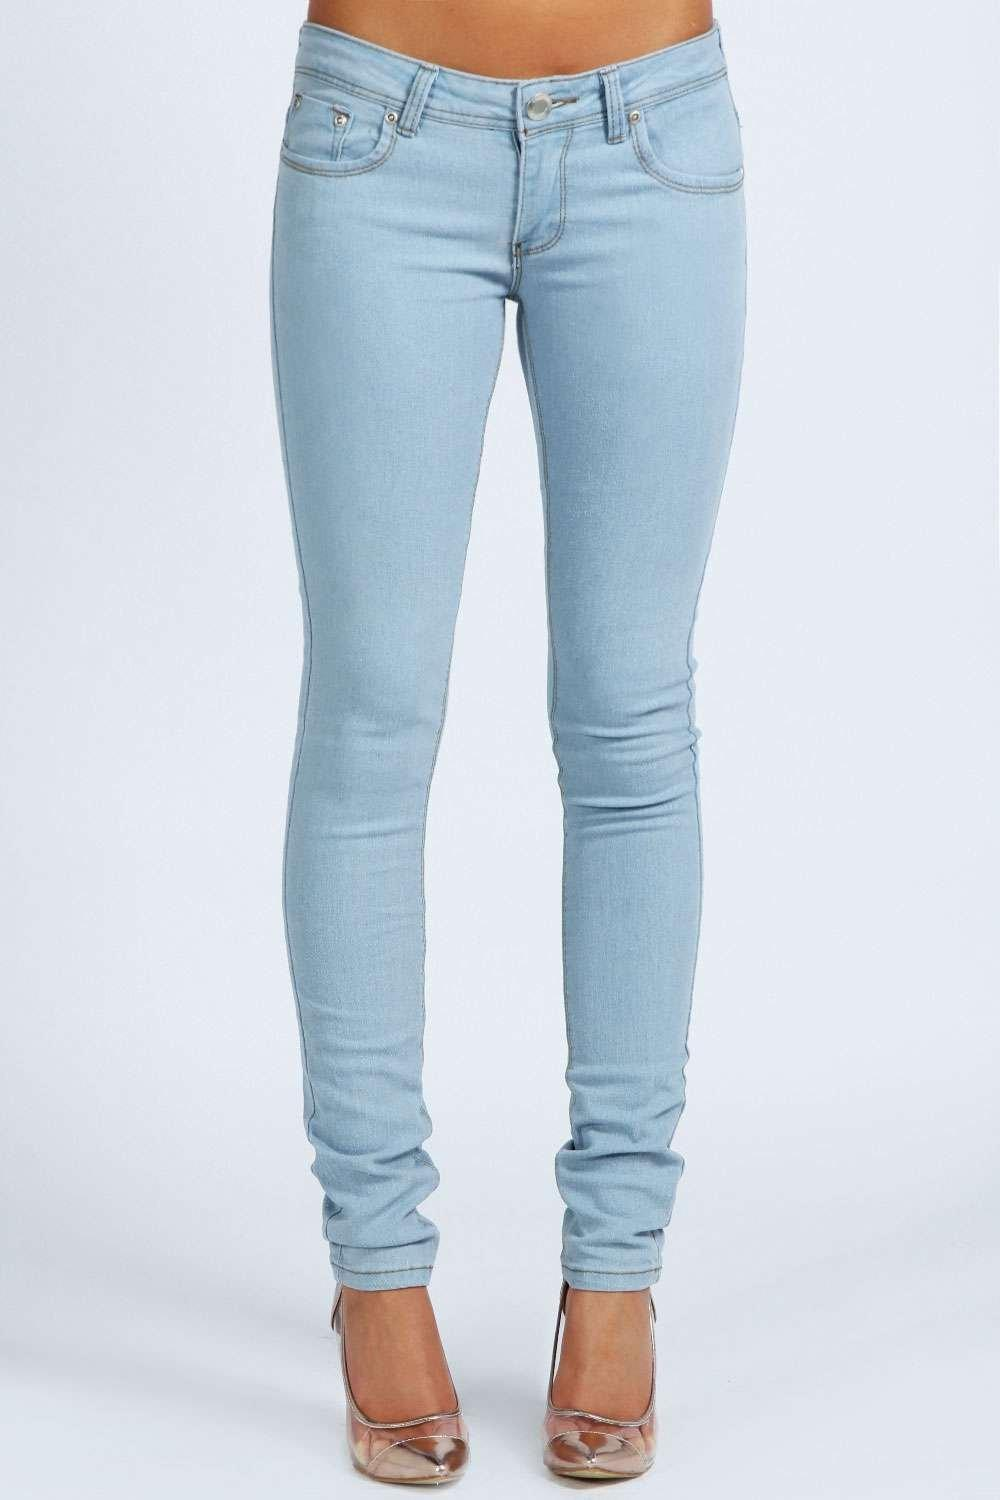 Petite Ripped Skinny Jeans - Legends Jeans